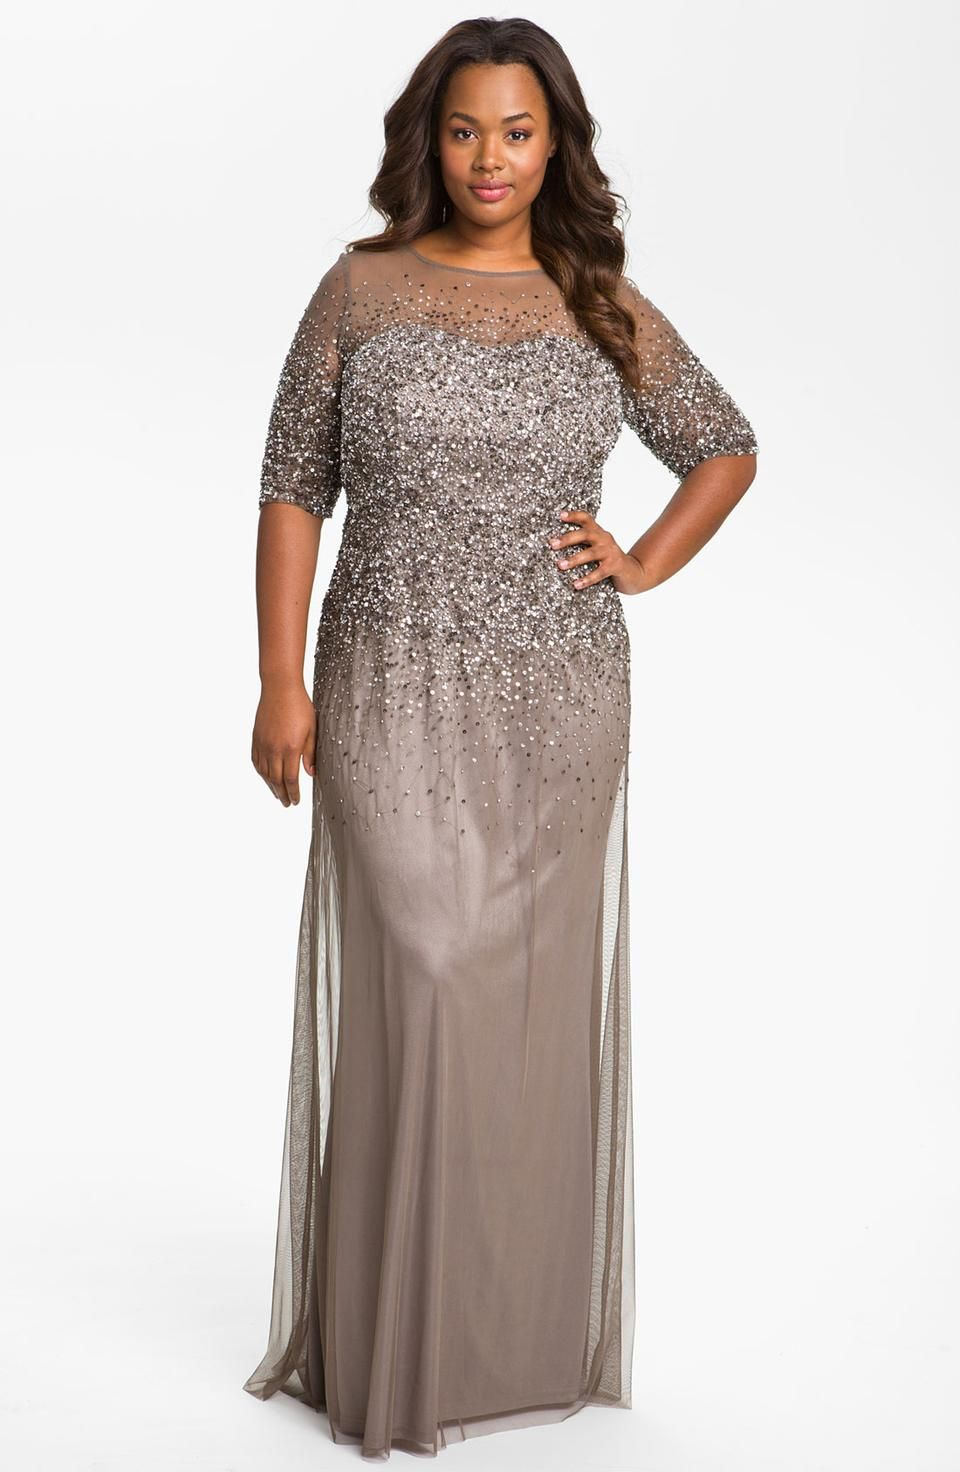 Adrianna Papell Beaded Illusion Gown Plus Size Adriannapapell